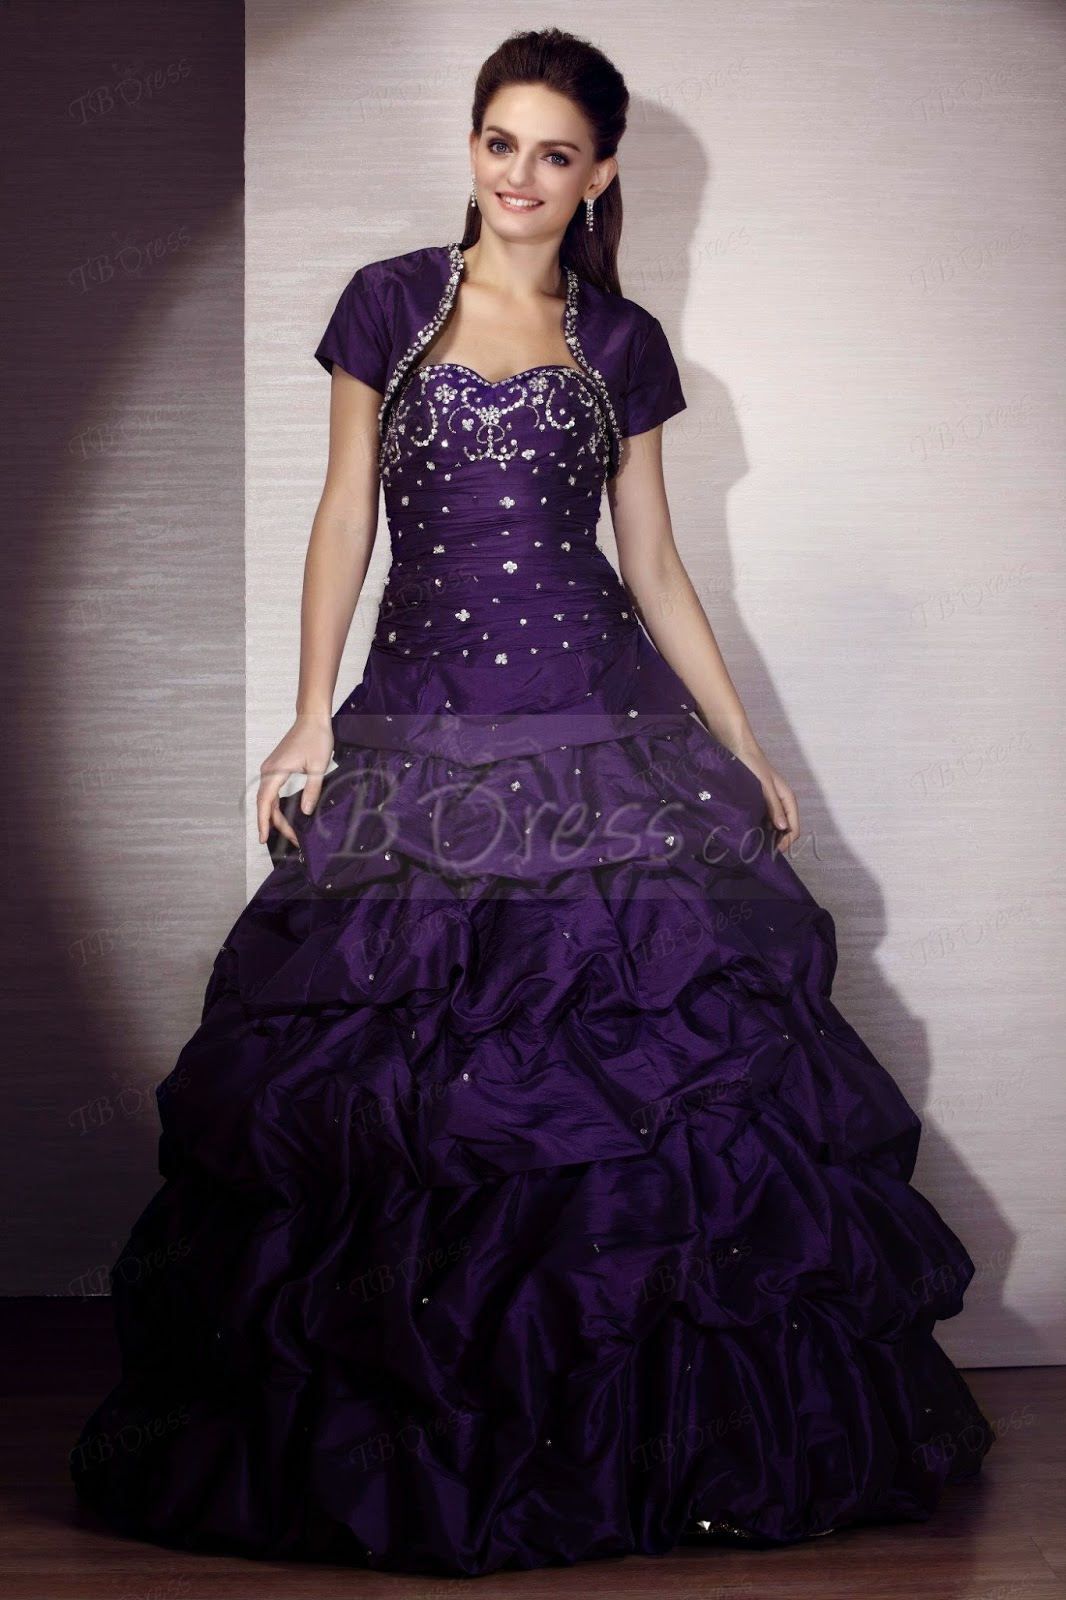 http://www.tbdress.com/product/New-Style-Floor-Length-Sweetheart-Quinceanera-Dress-8883098.html